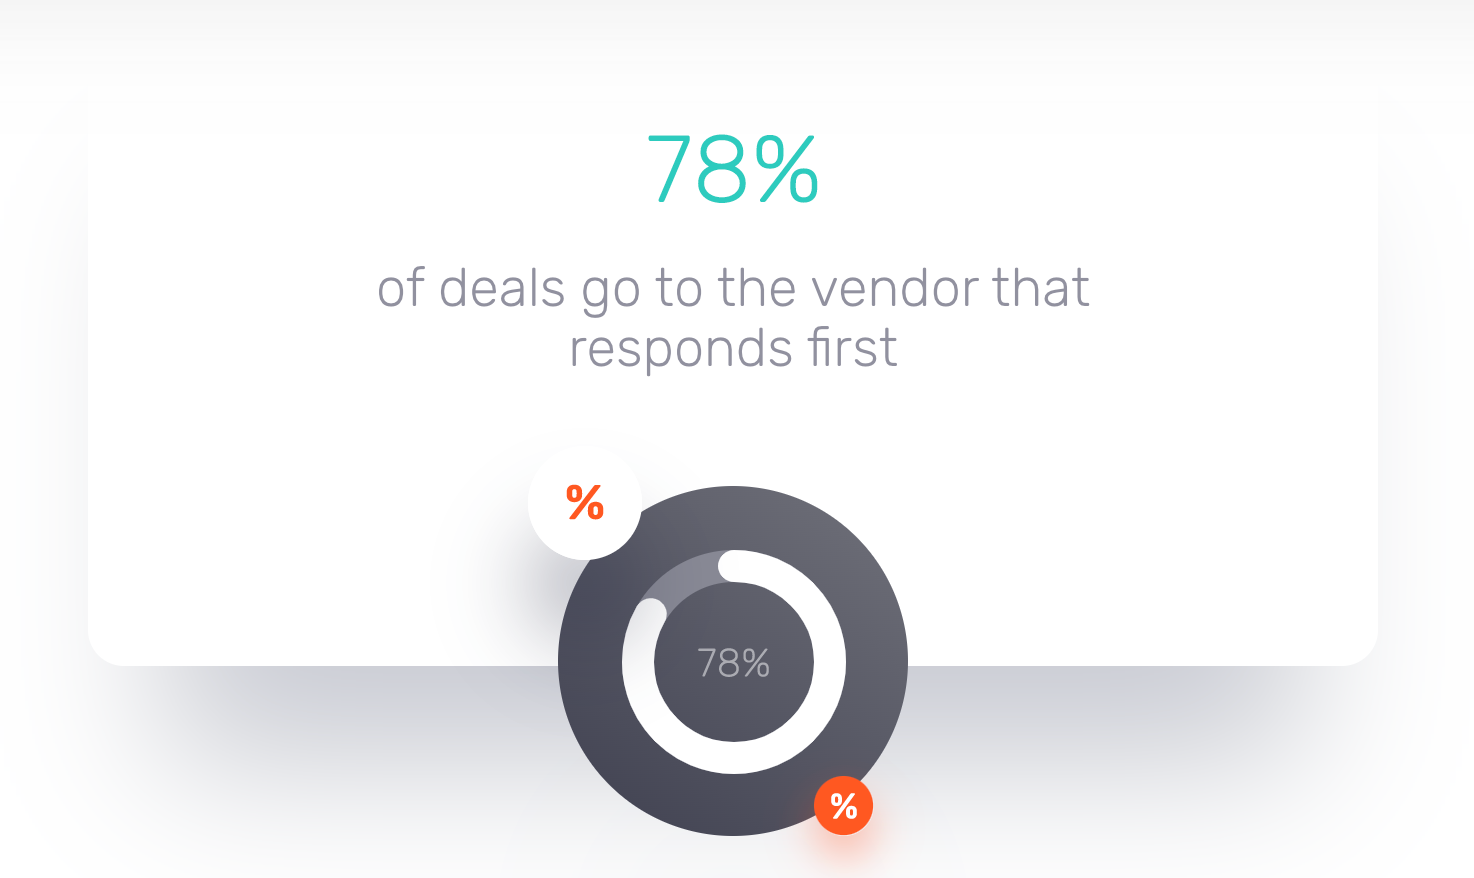 78% of deals go to the vendor that responds first